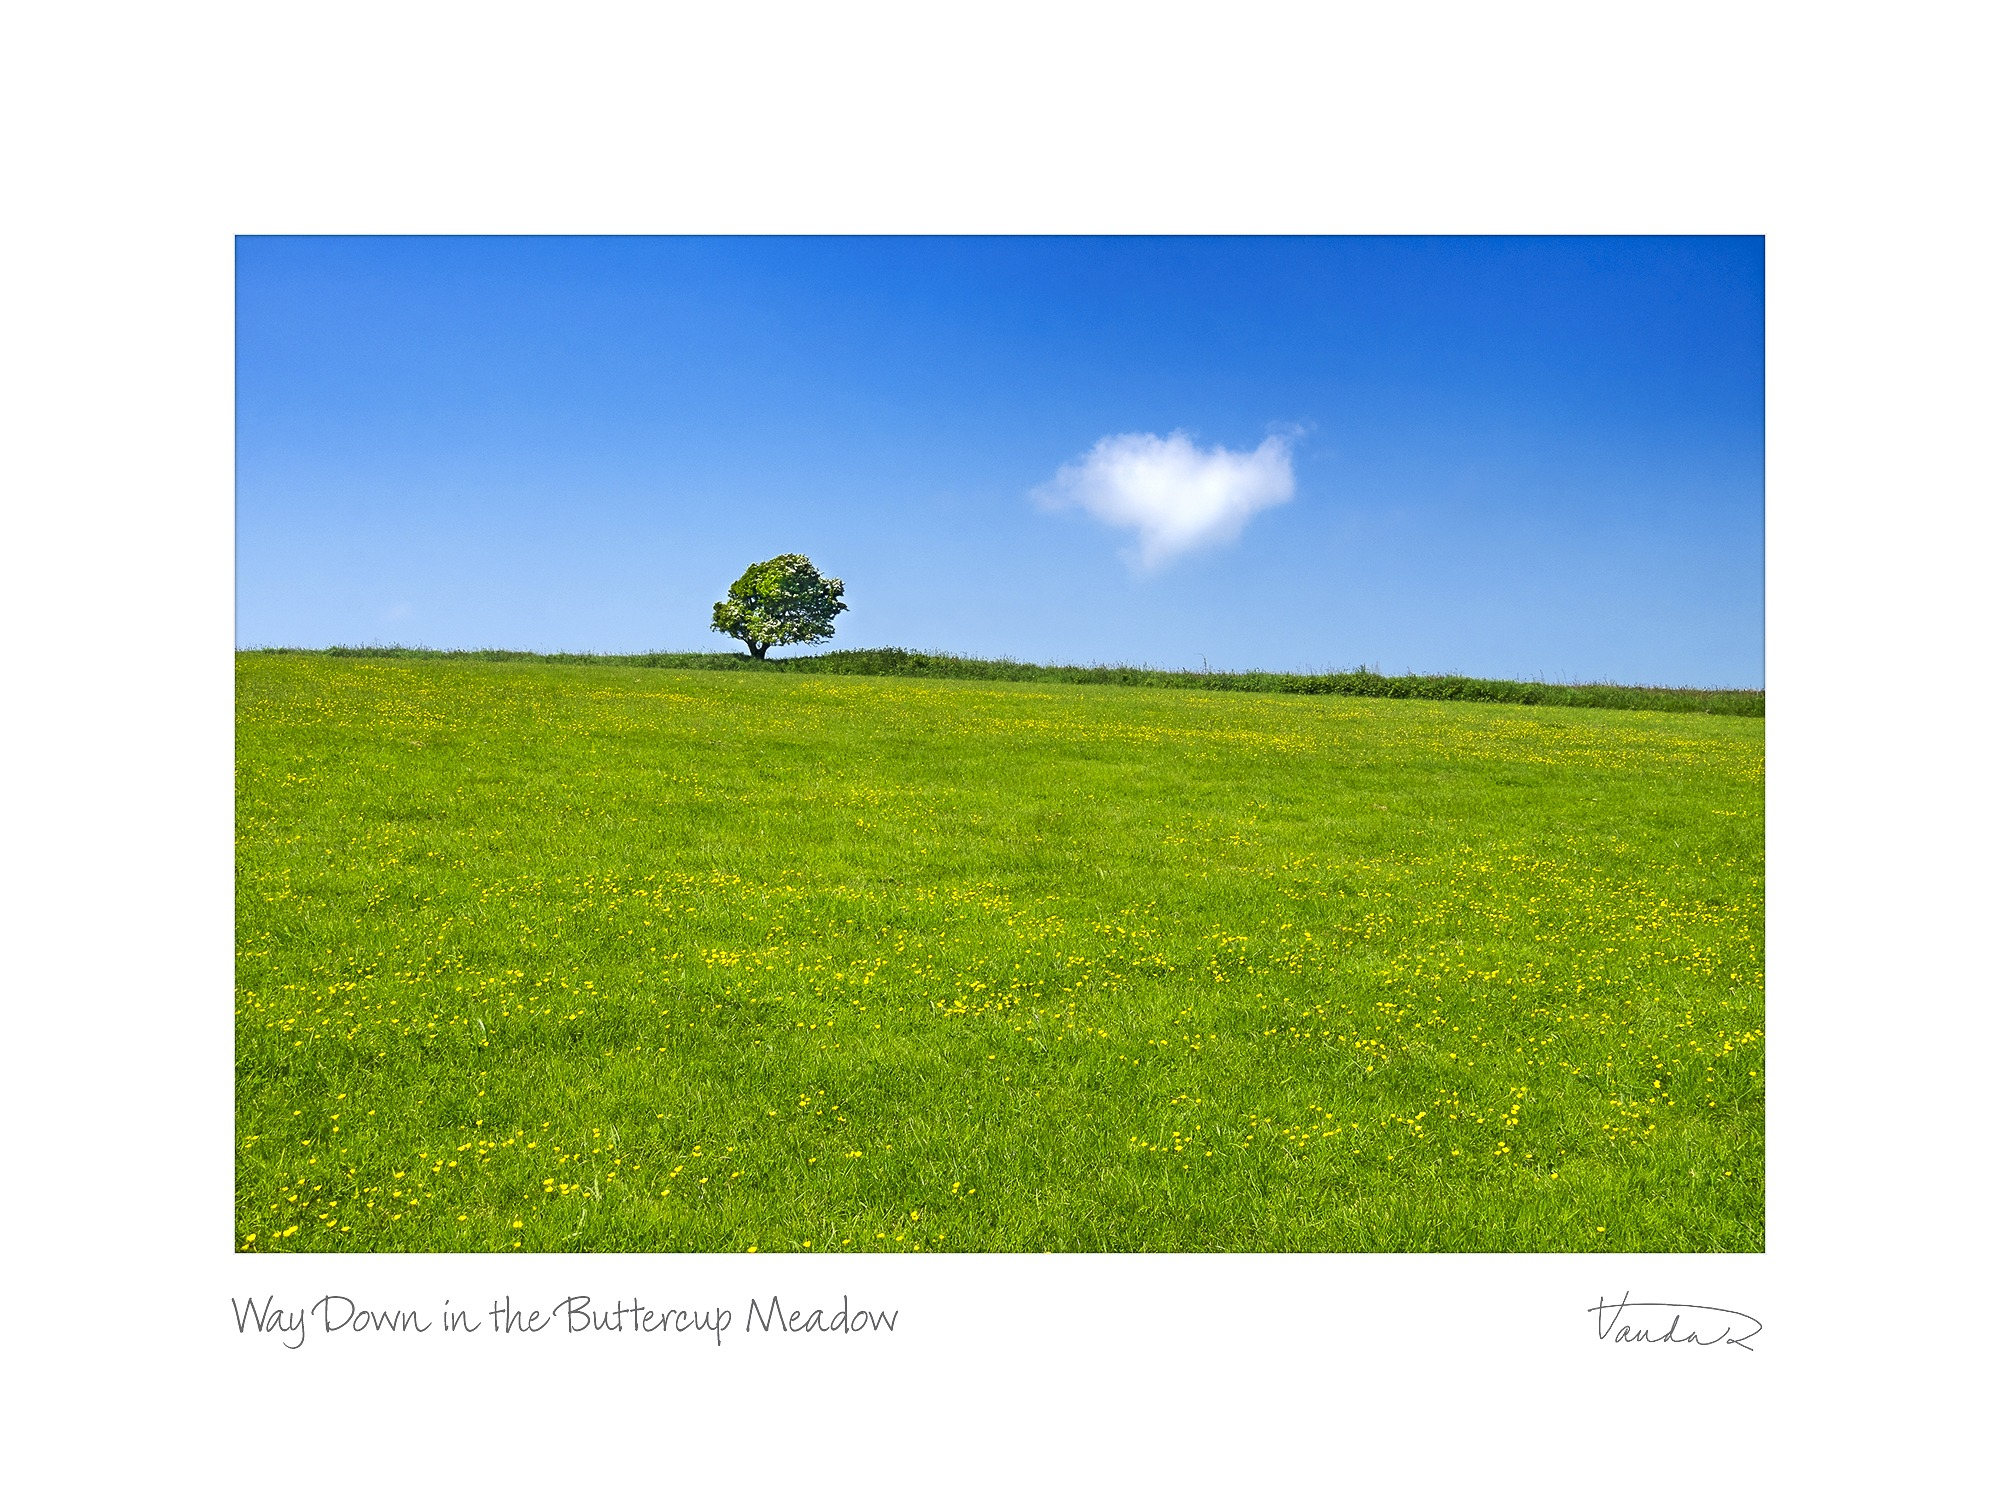 Way Down in the Buttercup Meadow